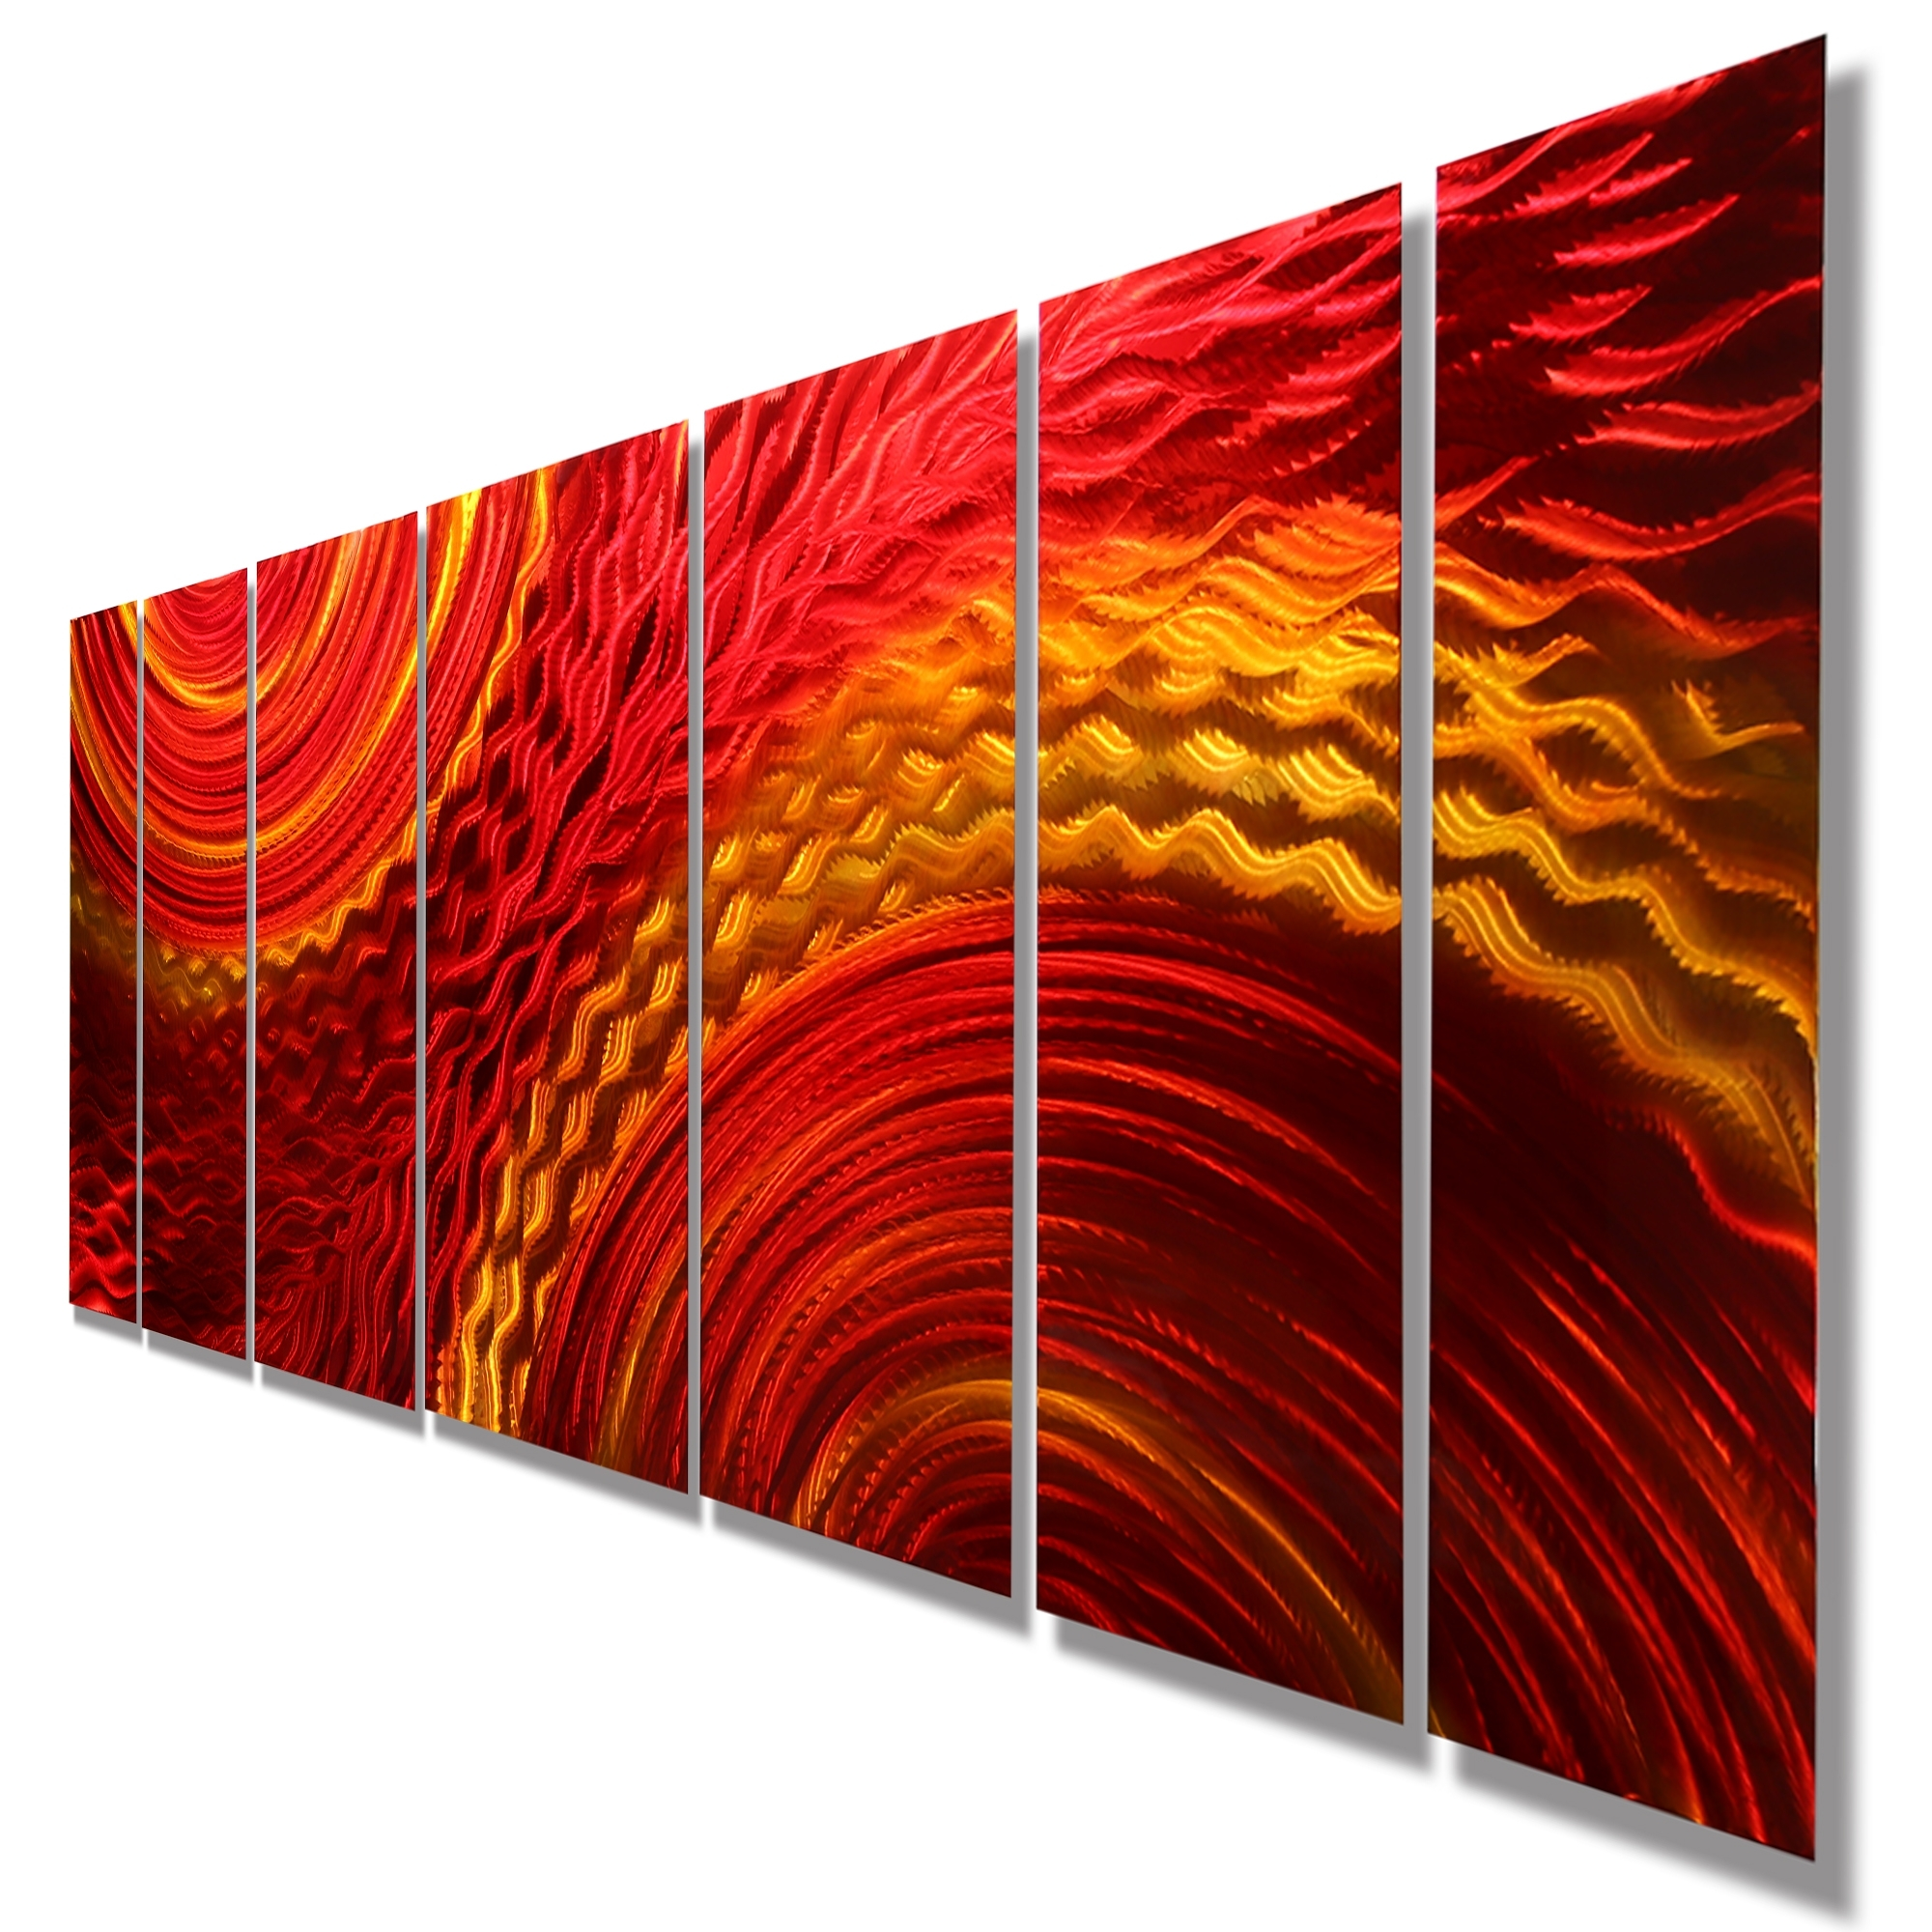 Home Decor: Alluring Abstract Metal Wall Art With Harvest Moods Xl With Regard To Most Recent Large Abstract Wall Art Australia (Gallery 20 of 20)